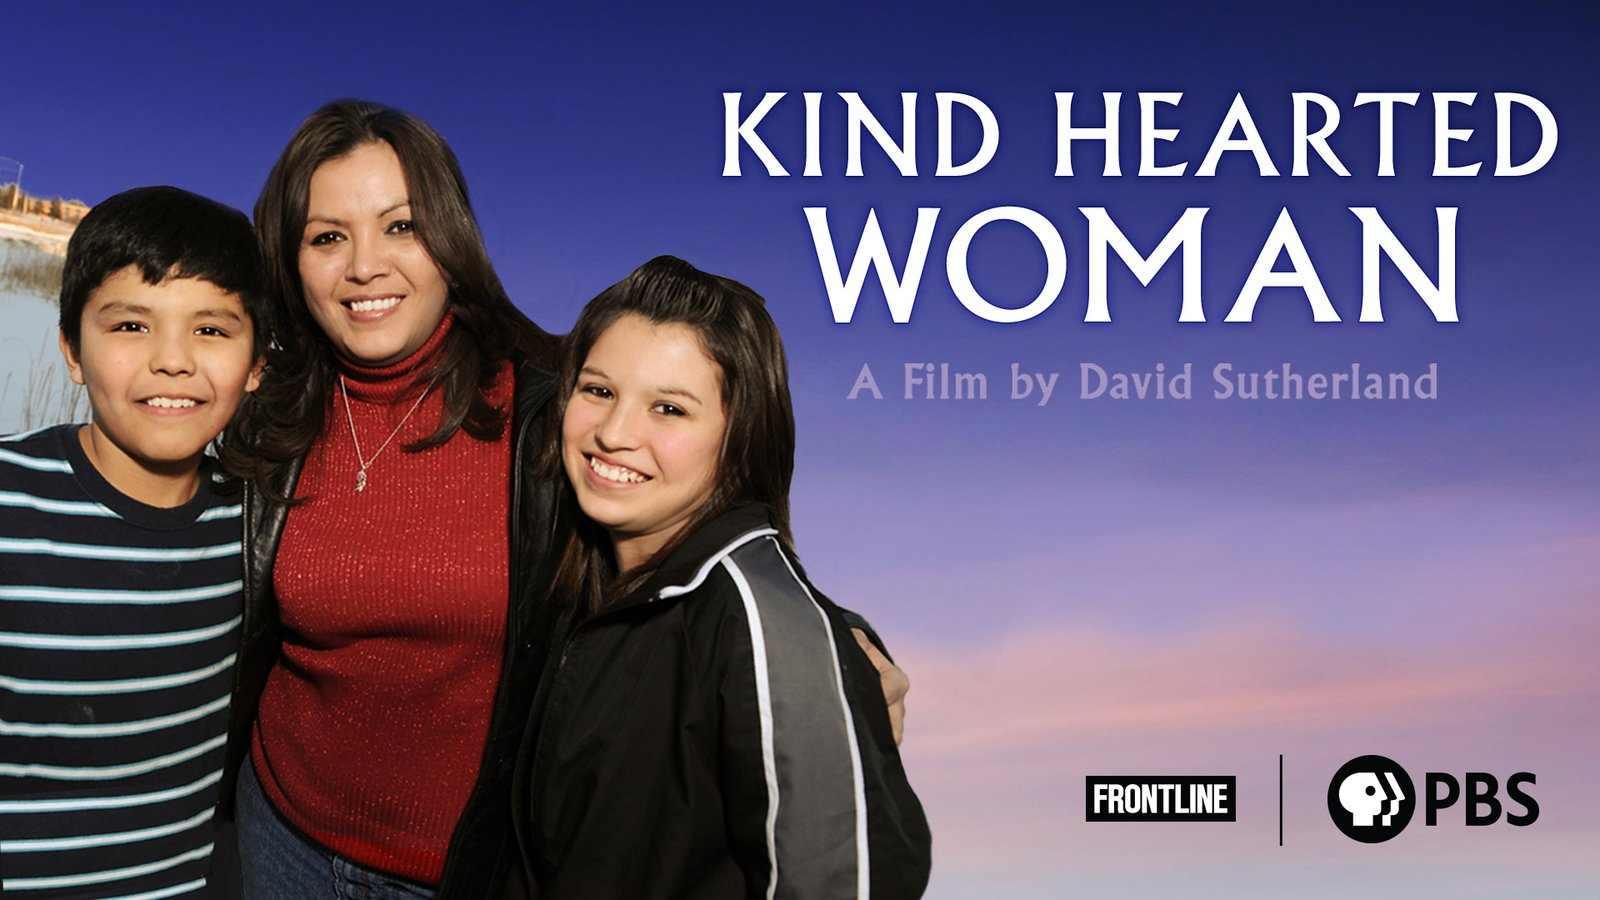 FRONTLINE - Kind Hearted Woman